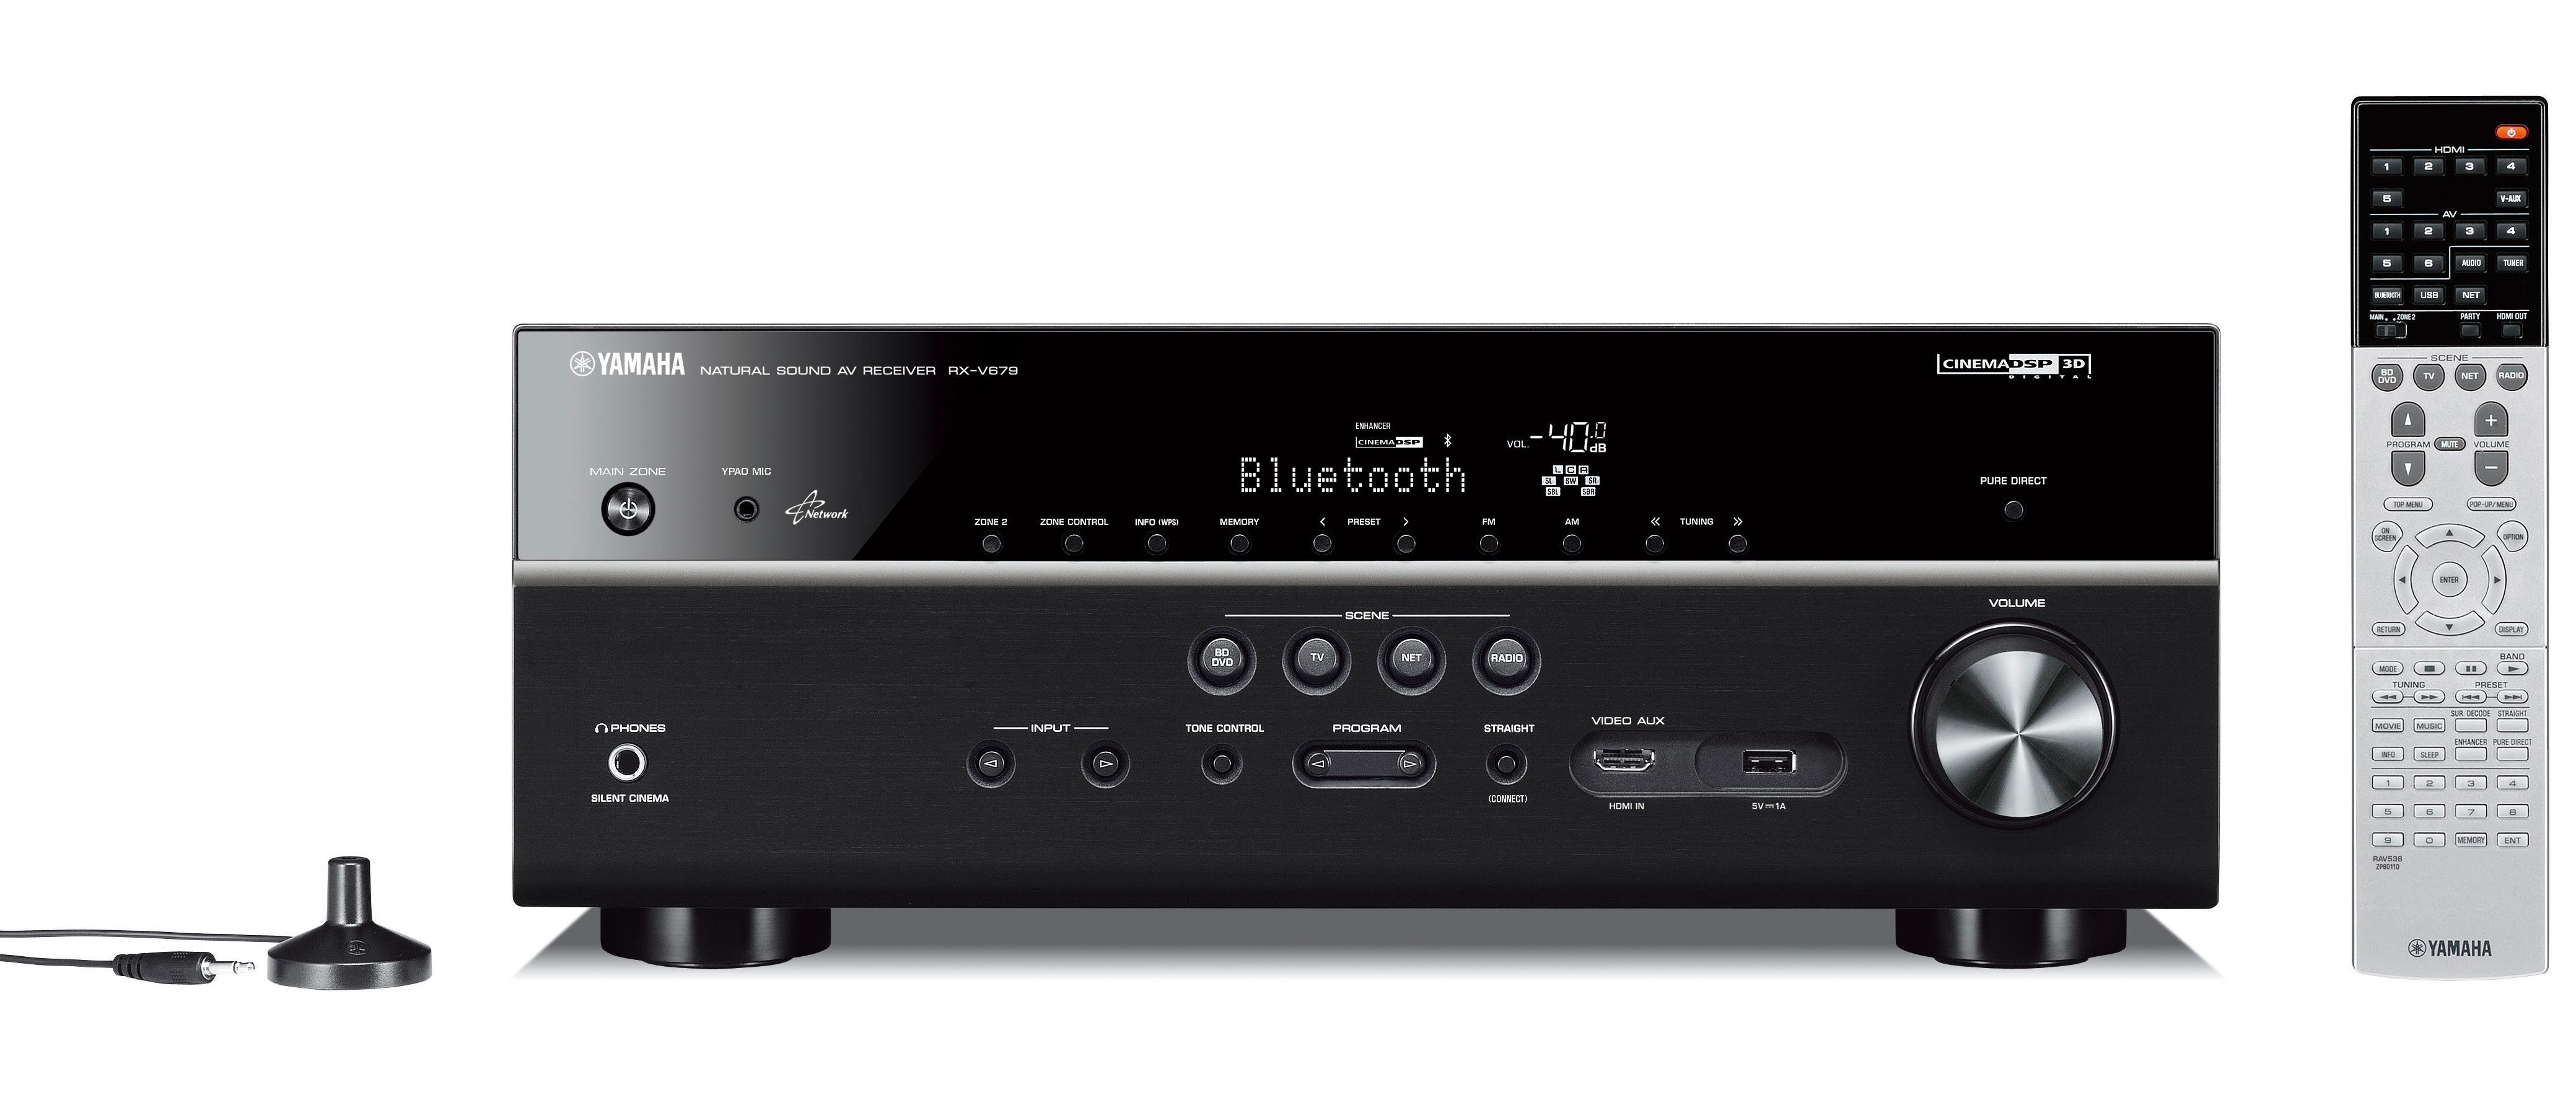 Yamaha RXV679 7.2 Channel Network AV Receiver in Black with WiFi and Bluetooth